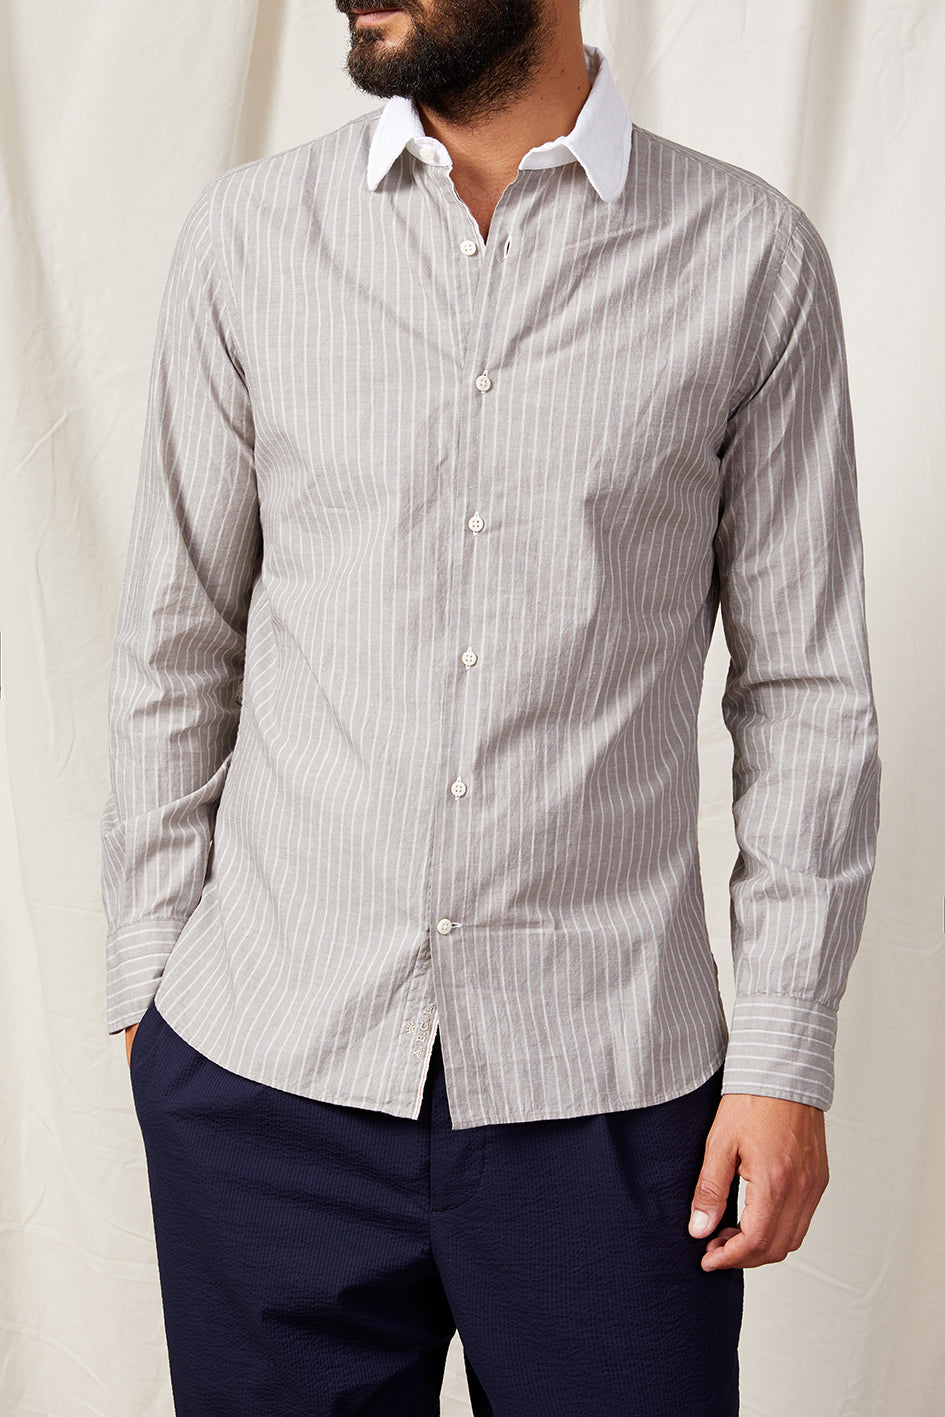 round contrast collar selvedge stripe 0147